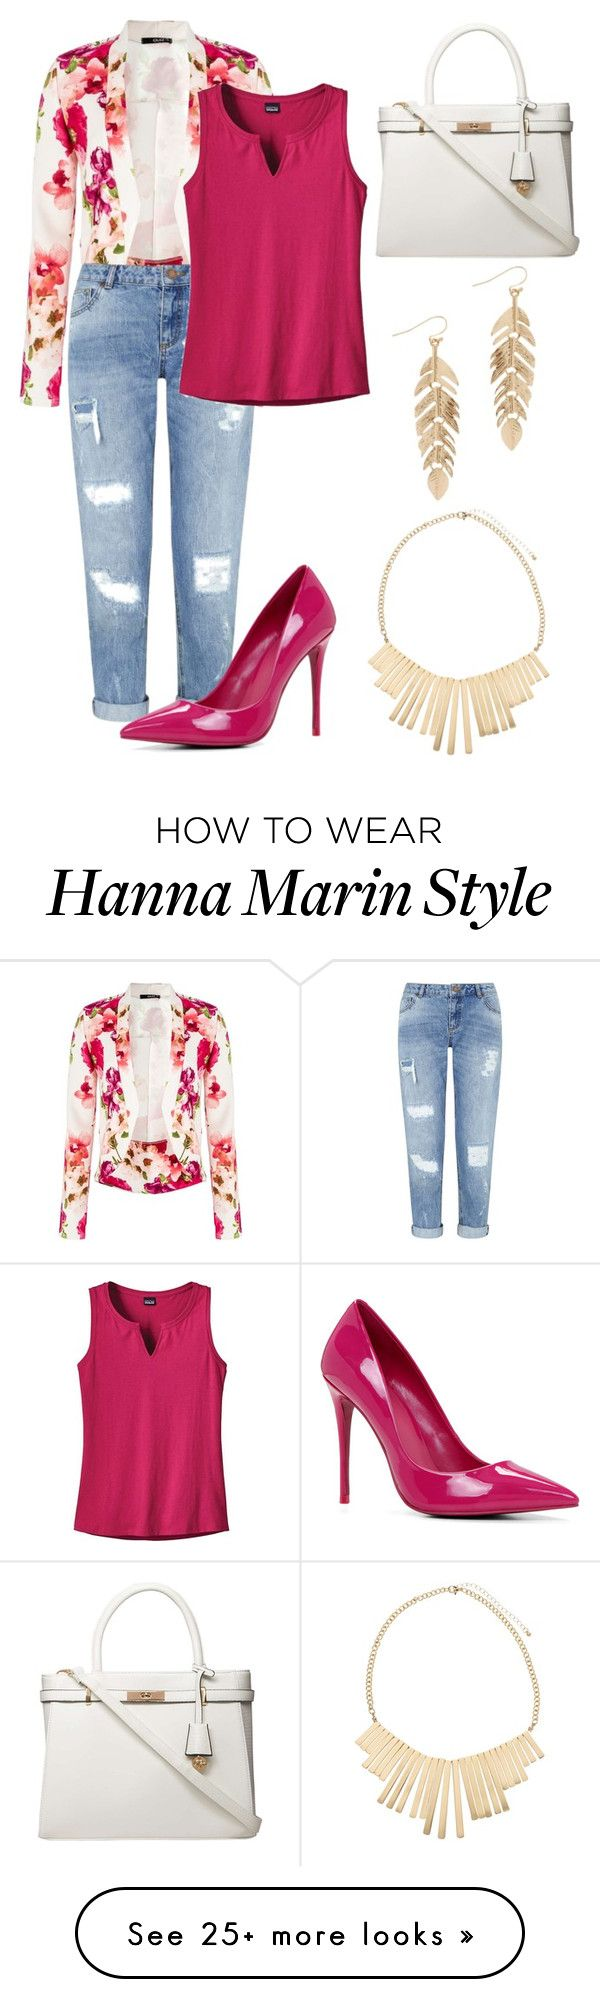 """""""hanna marin"""" by princessdayna on Polyvore featuring Quiz, Miss Selfridge, Patagonia, ALDO, John Lewis, Humble Chic and Dorothy Perkins"""